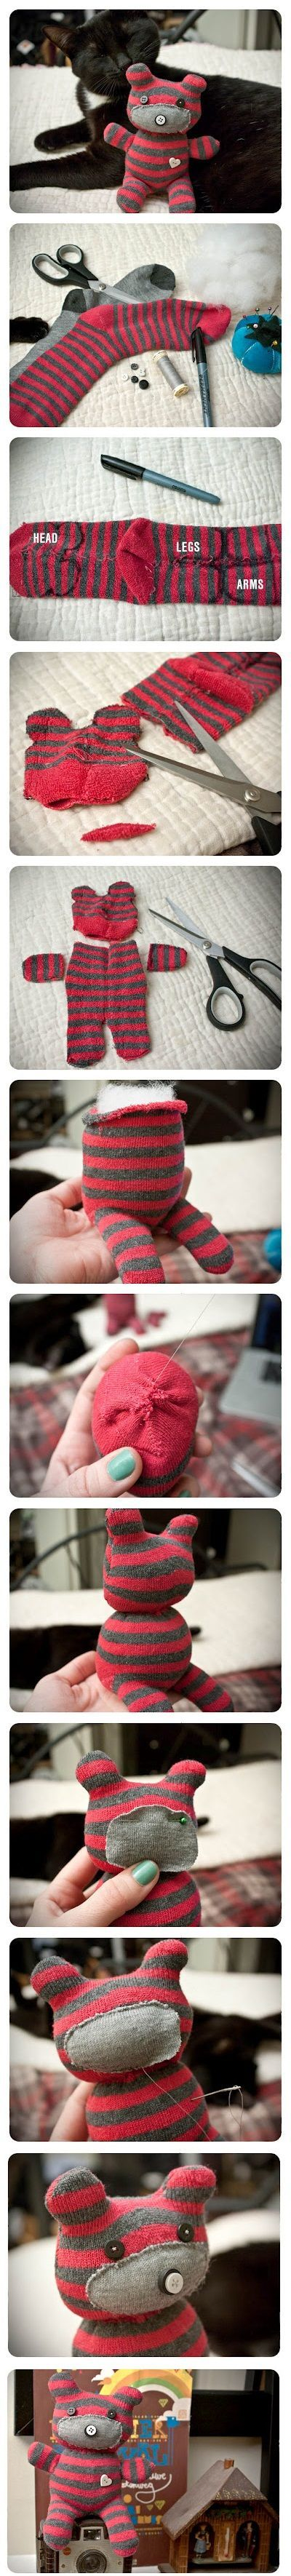 Diy teddy